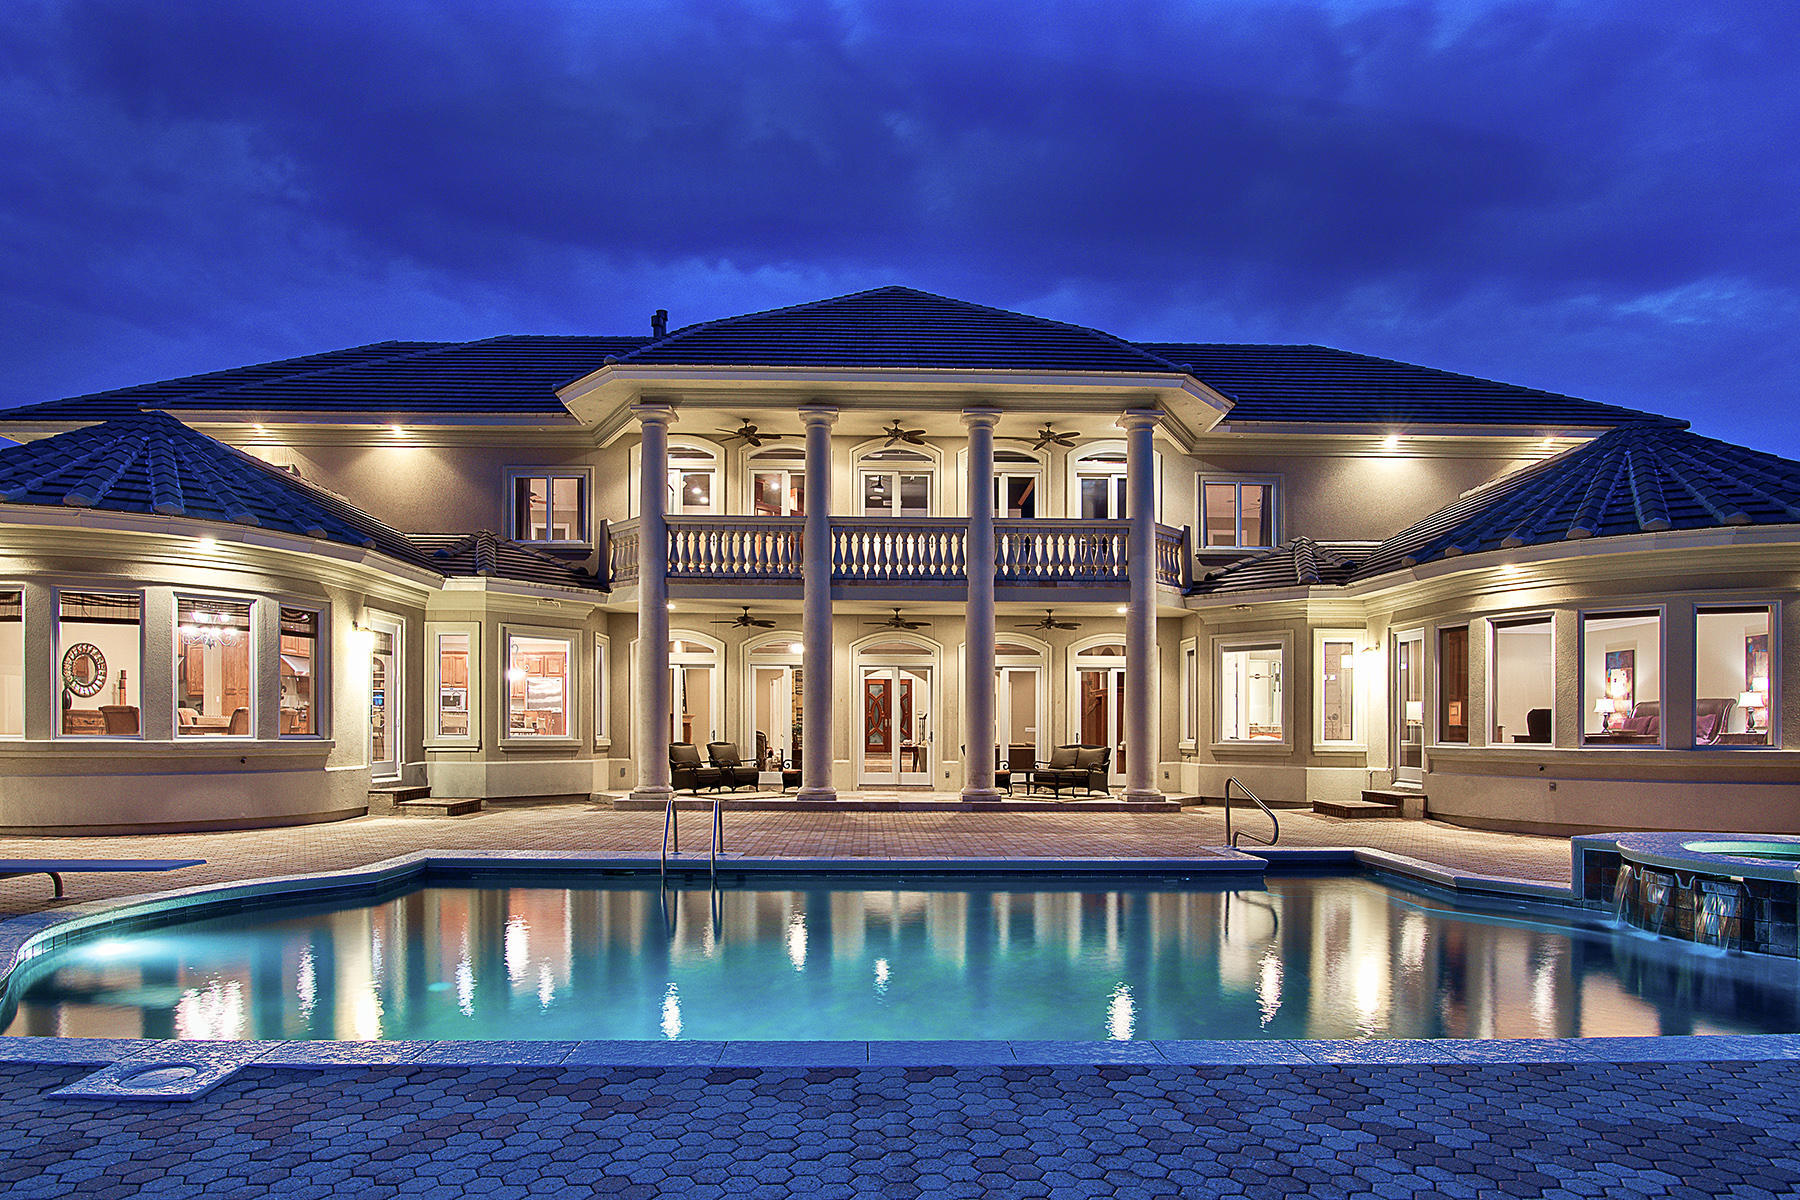 Casa Unifamiliar por un Venta en MAGNIFICENT WATERFRONT ESTATE 3807 Indian Trail Destin, Florida, 32541 Estados Unidos